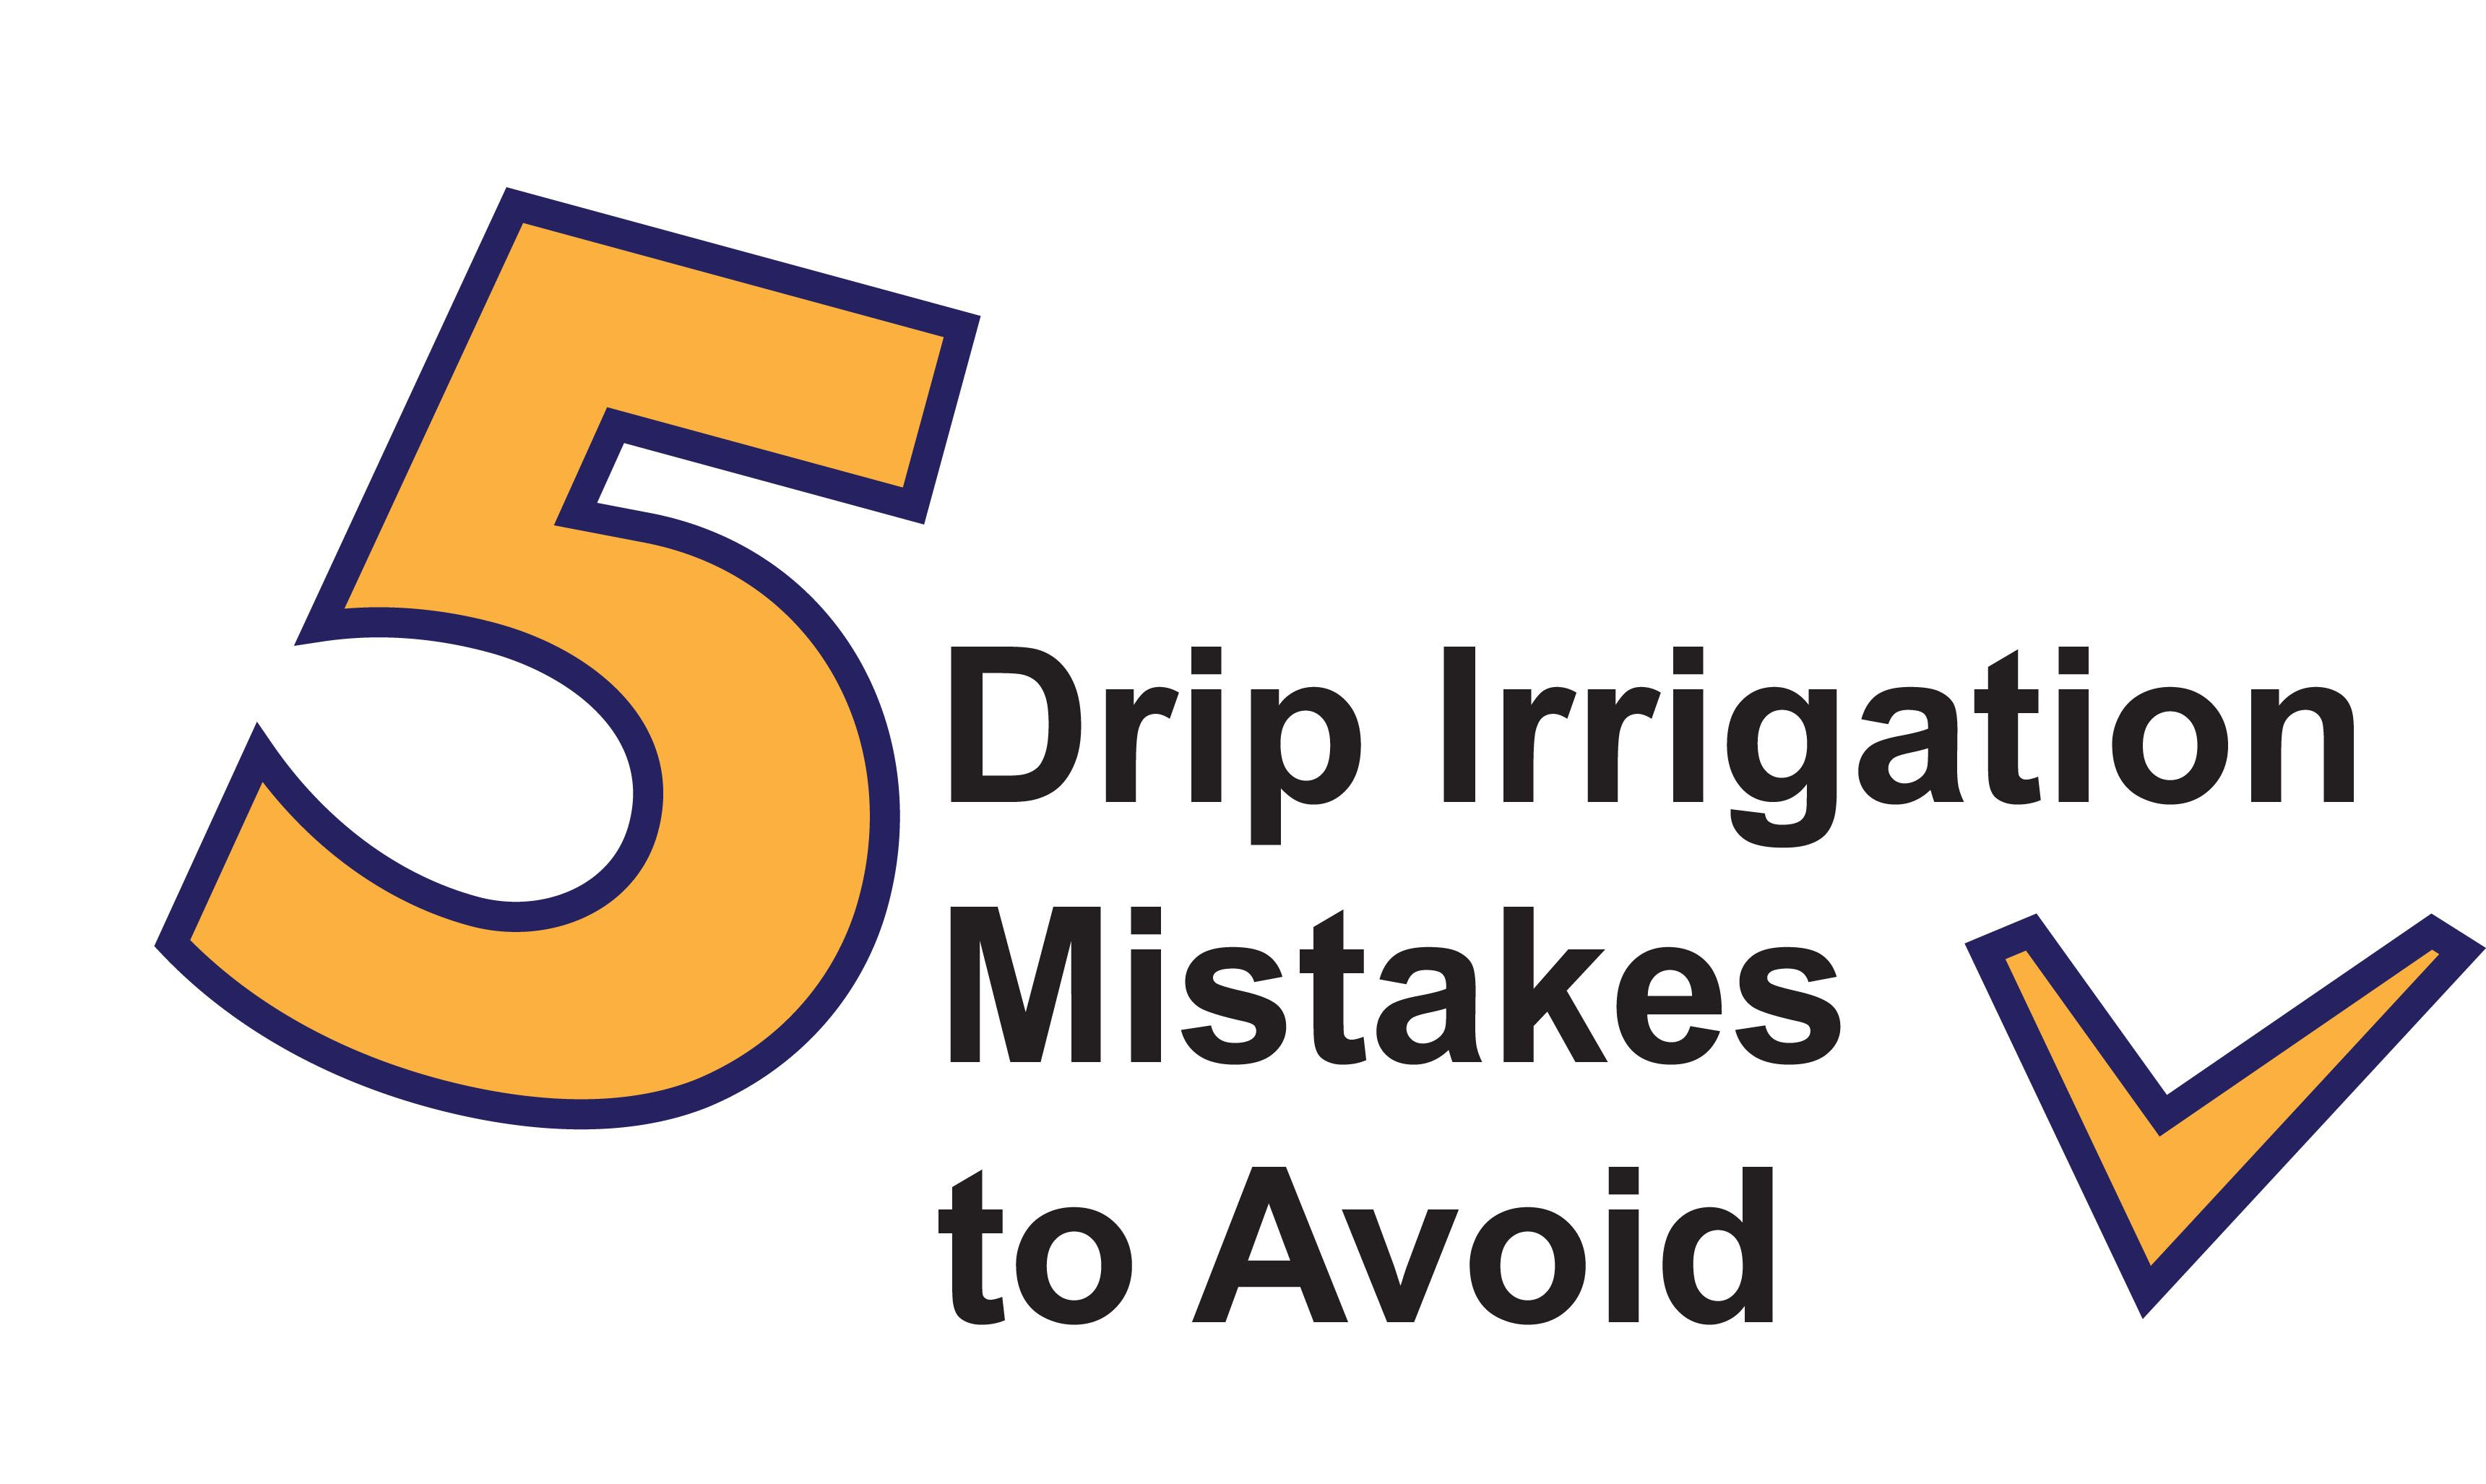 5 drip irrigation mistakes to avoid over watering your plants not